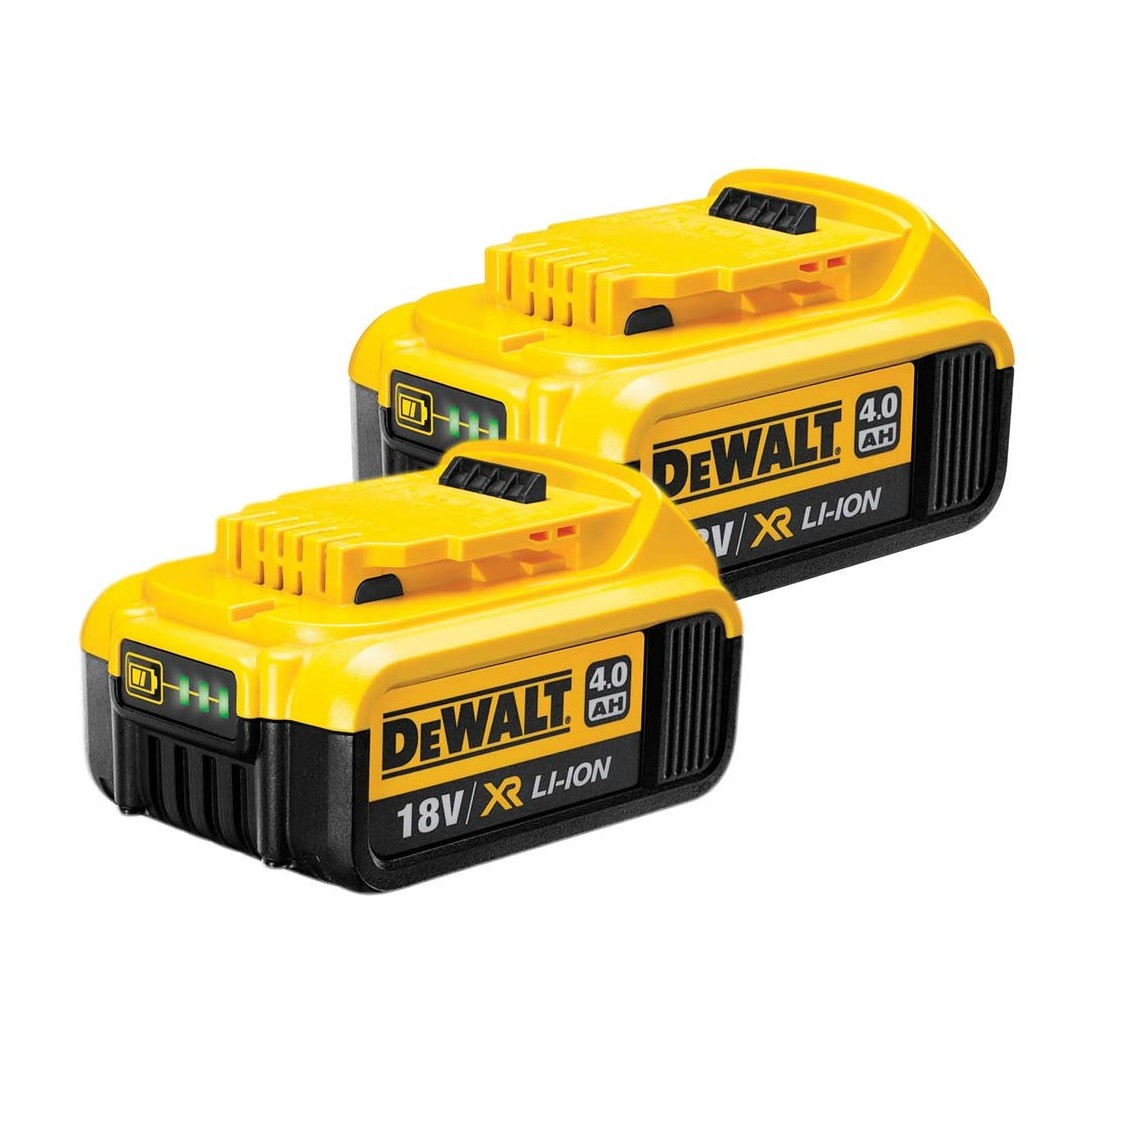 dewalt dcb182x2 18v 4ah li ion xr slide battery twin pack. Black Bedroom Furniture Sets. Home Design Ideas